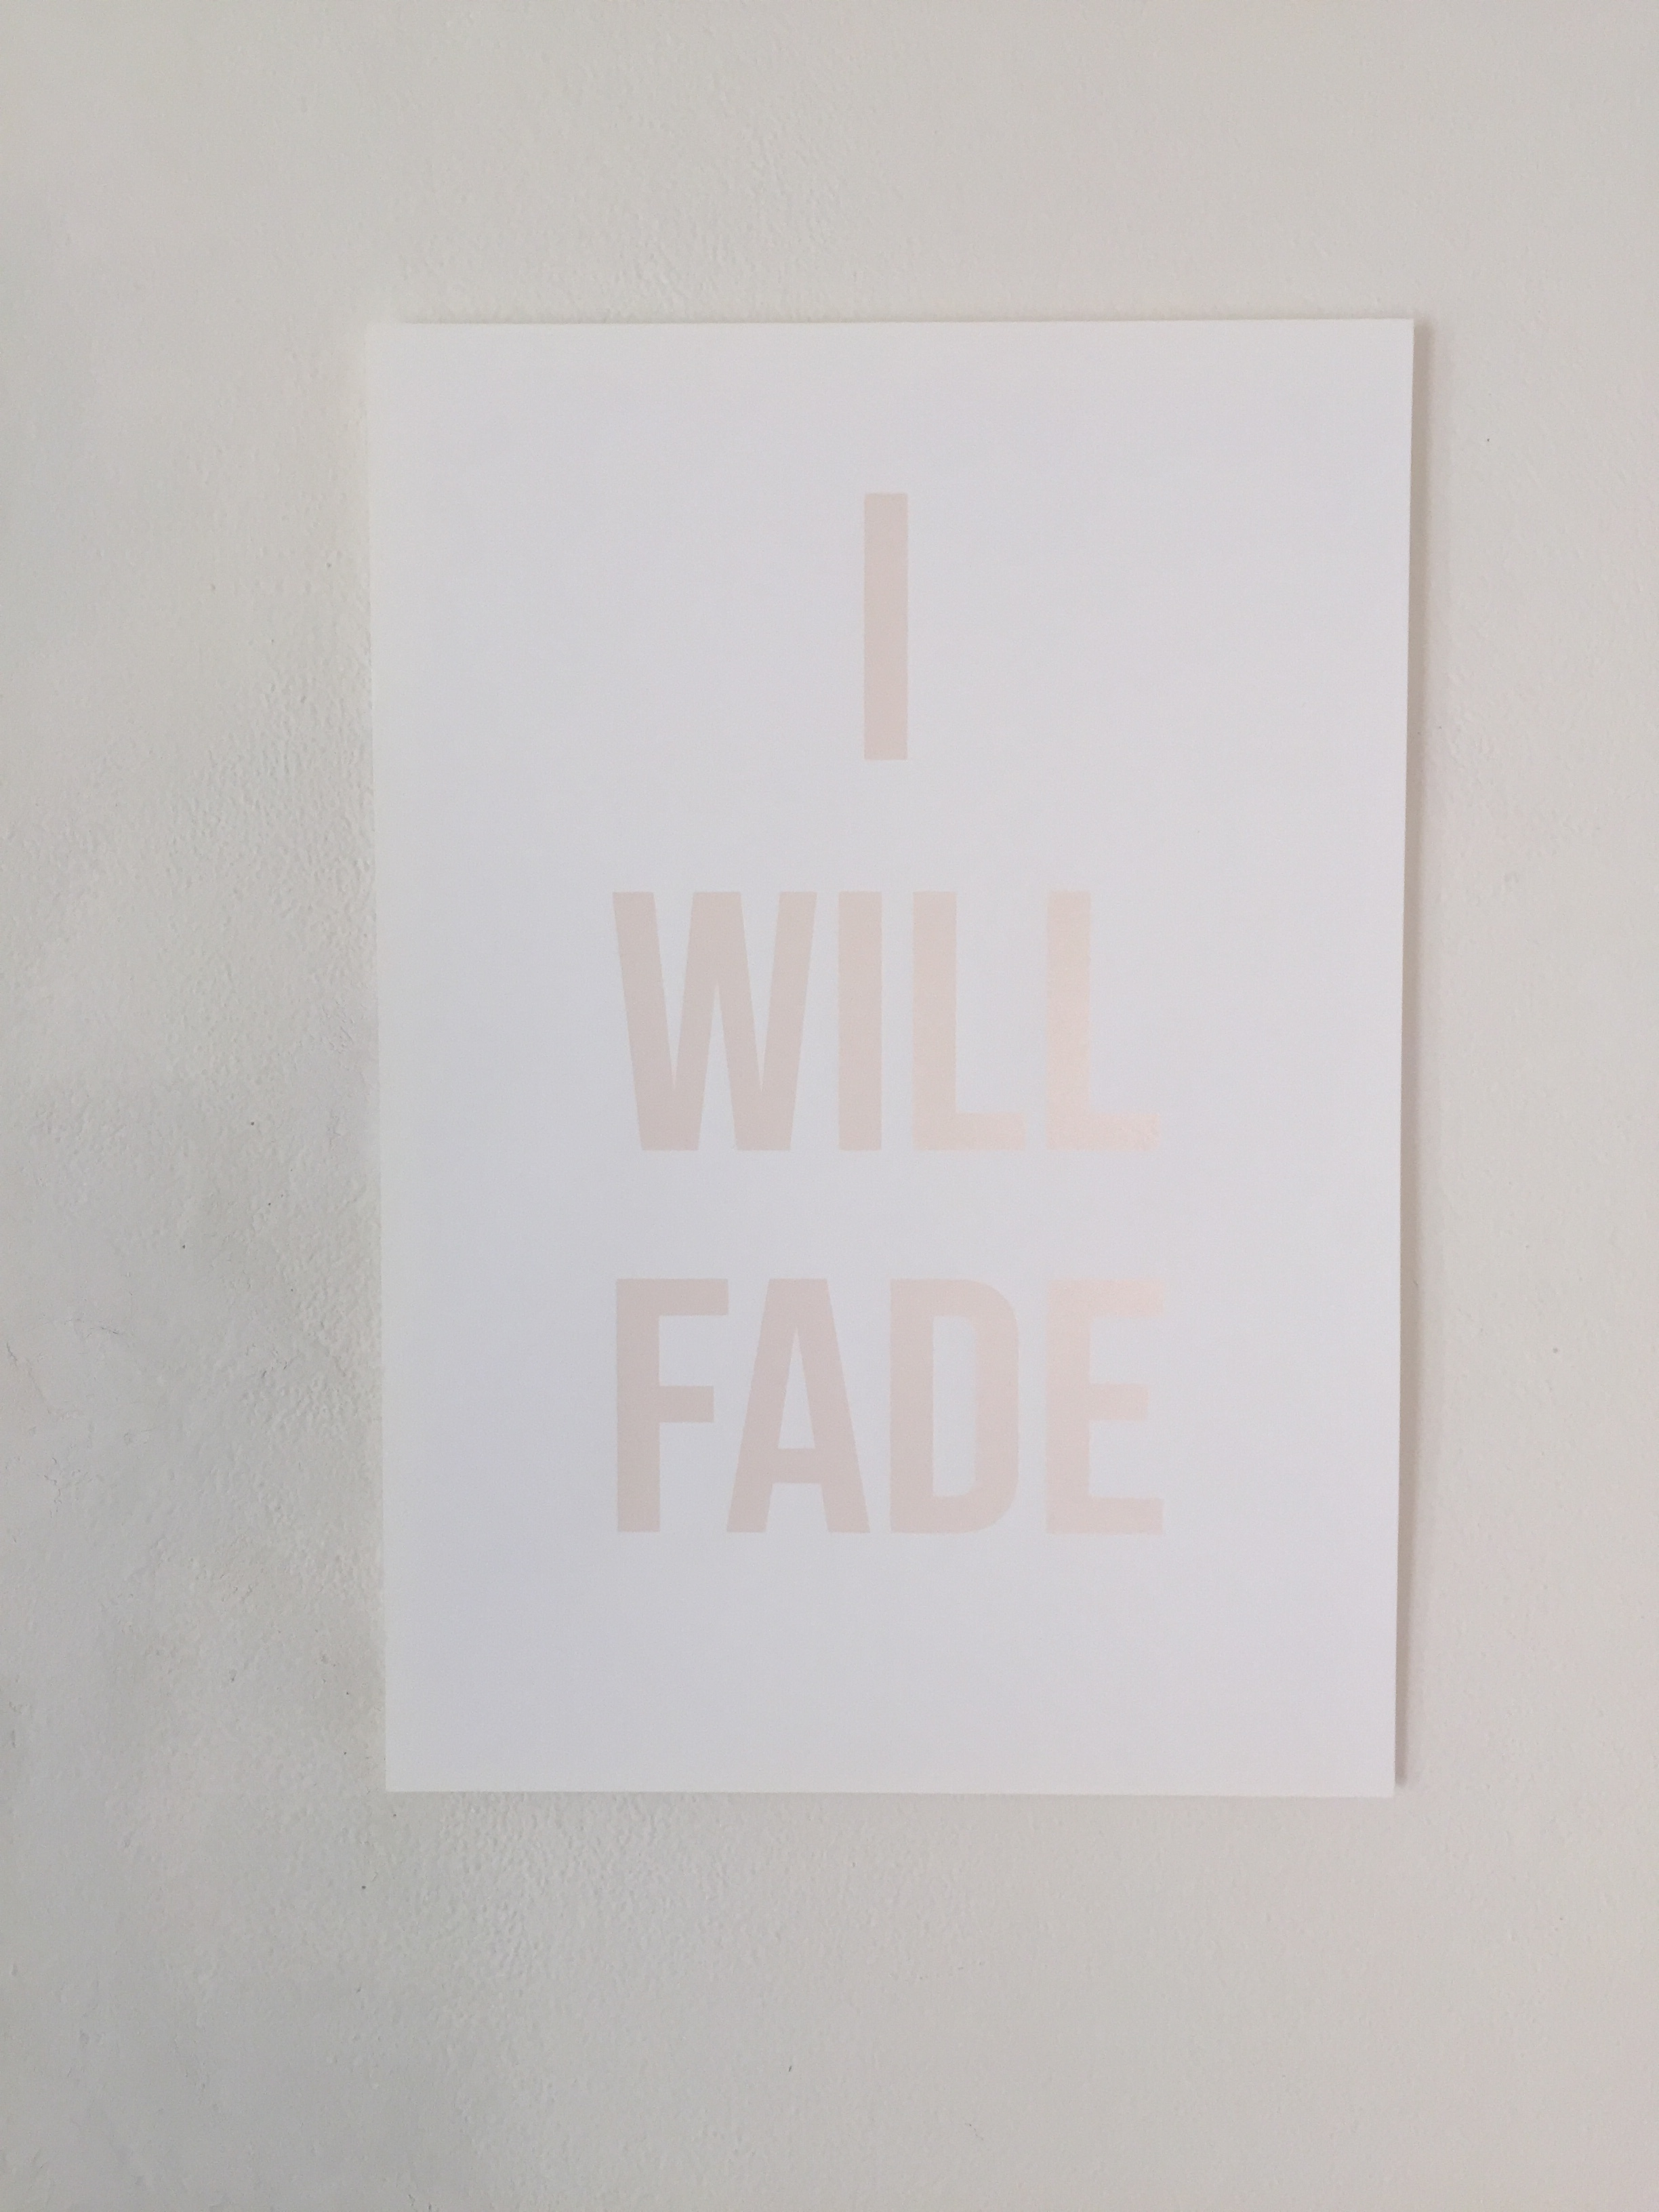 I WILL FADE  2018 / Screen print · Edition of 15 prints · Fabiano Academia 350grs · 50cm x 35 cm · Botanical ink: avocado and prunus cerasiferia